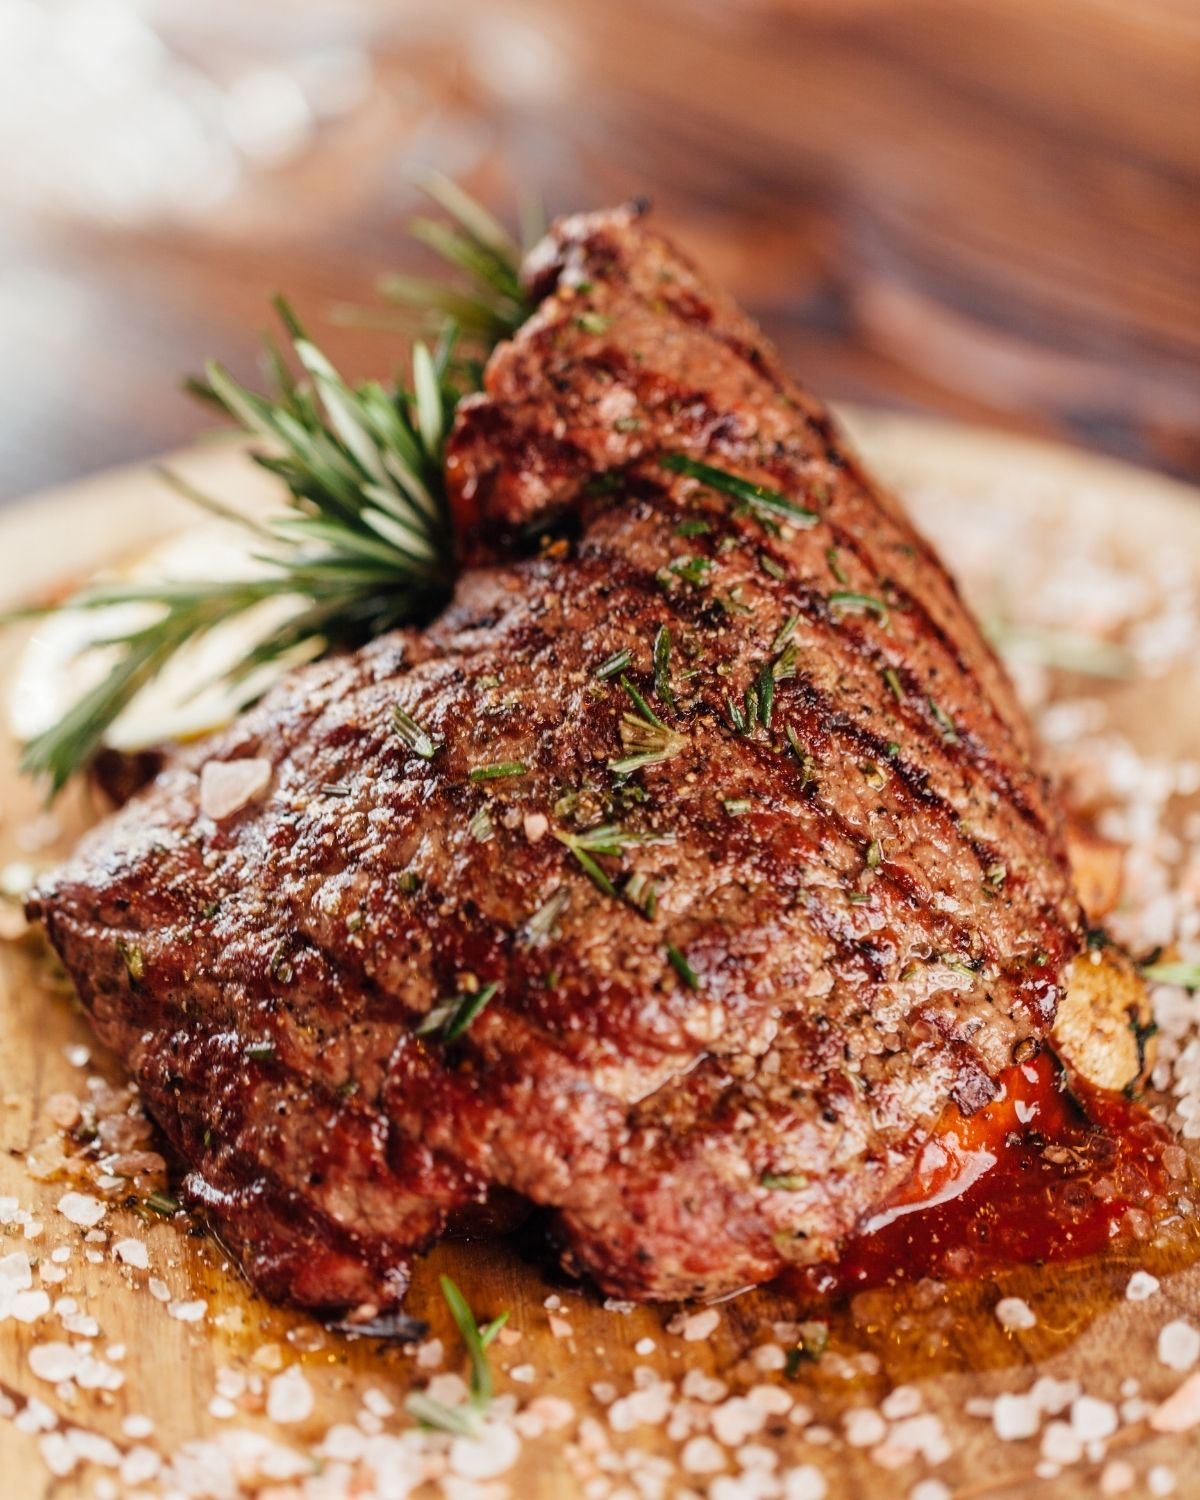 Steak with rosemary sprig on a plate